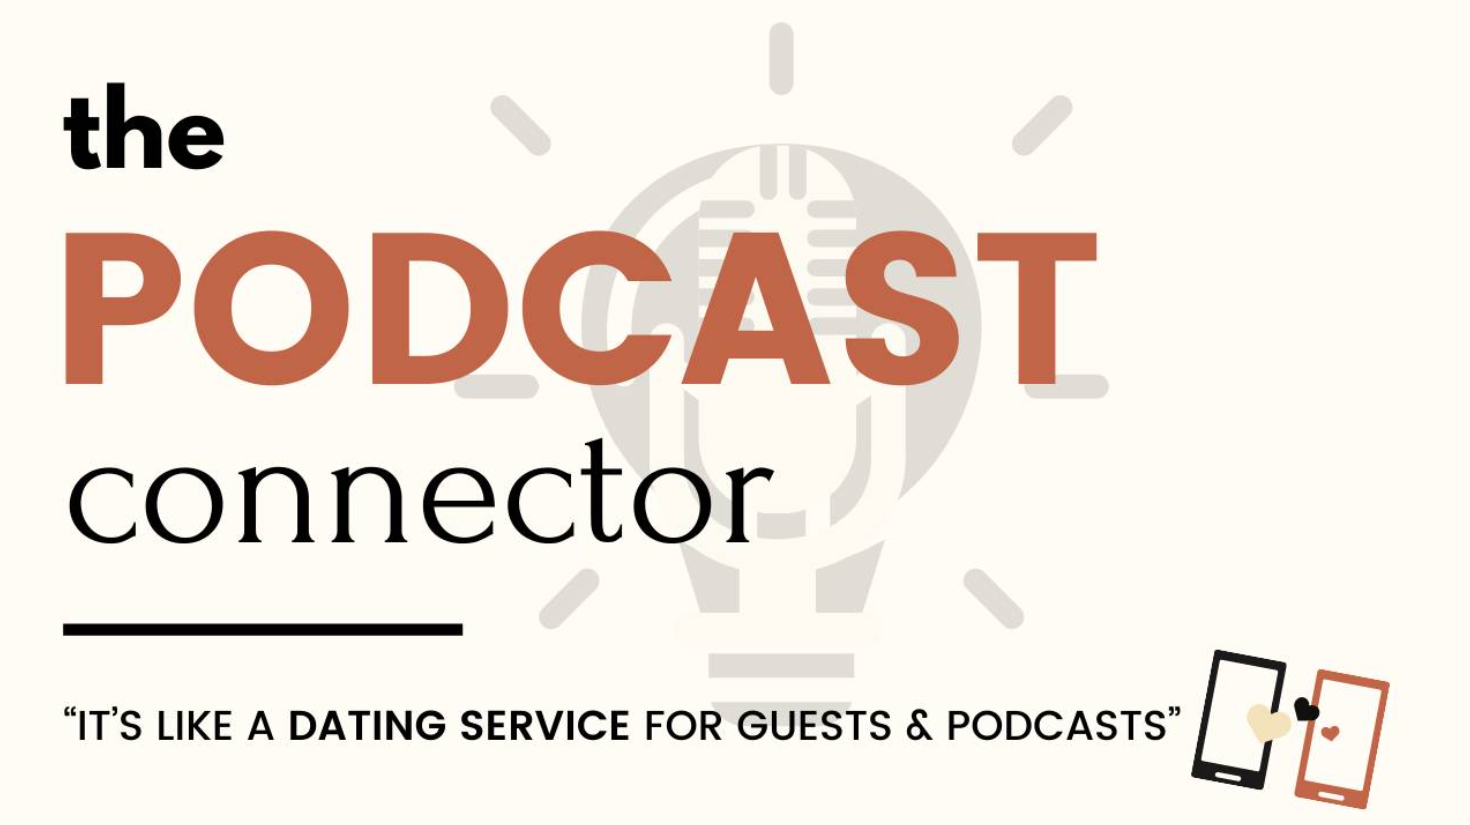 The Podcast Connector